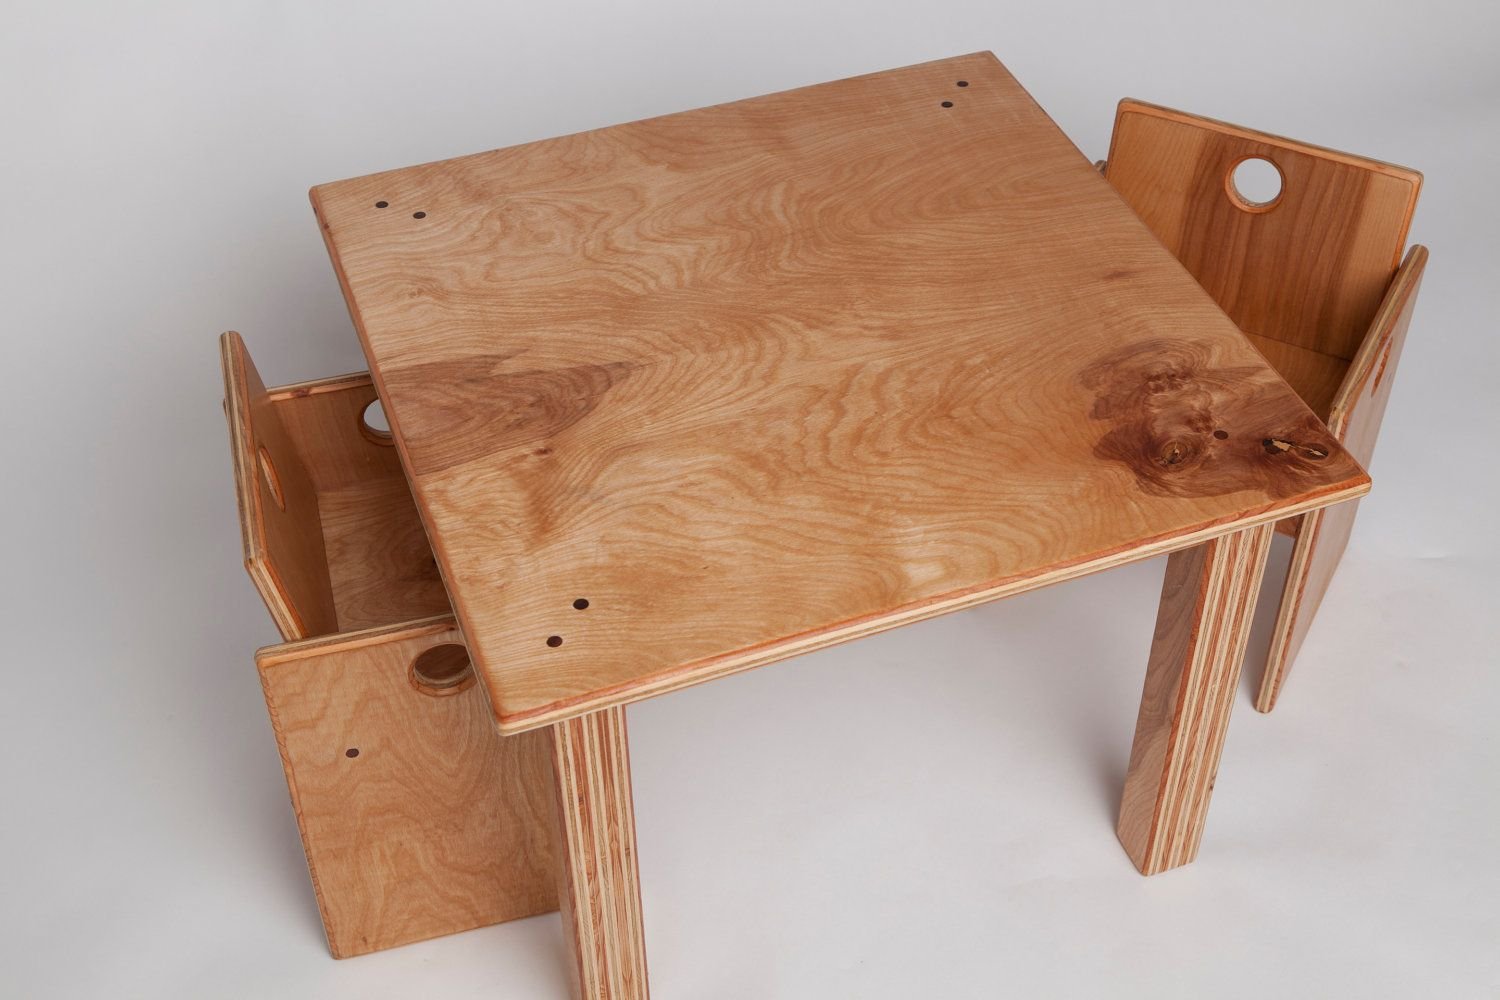 Wooden Table And Chairs For Kids Full Size Of Toddler Wooden Table